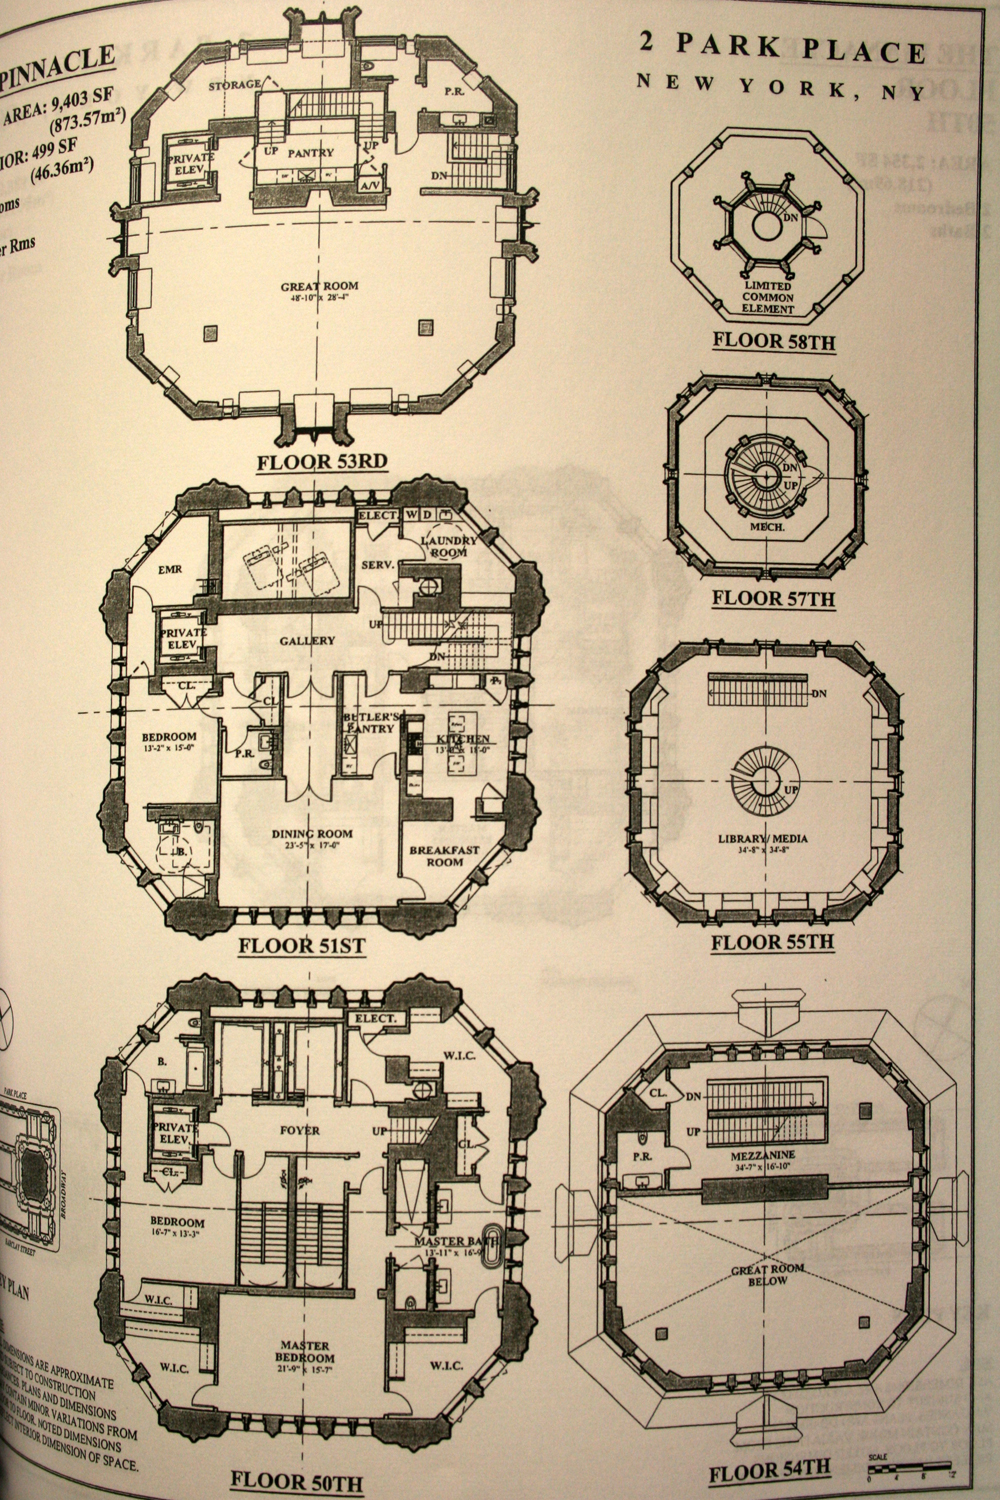 woolworth building penthouse floor plan, woolworth penthouse floor plan